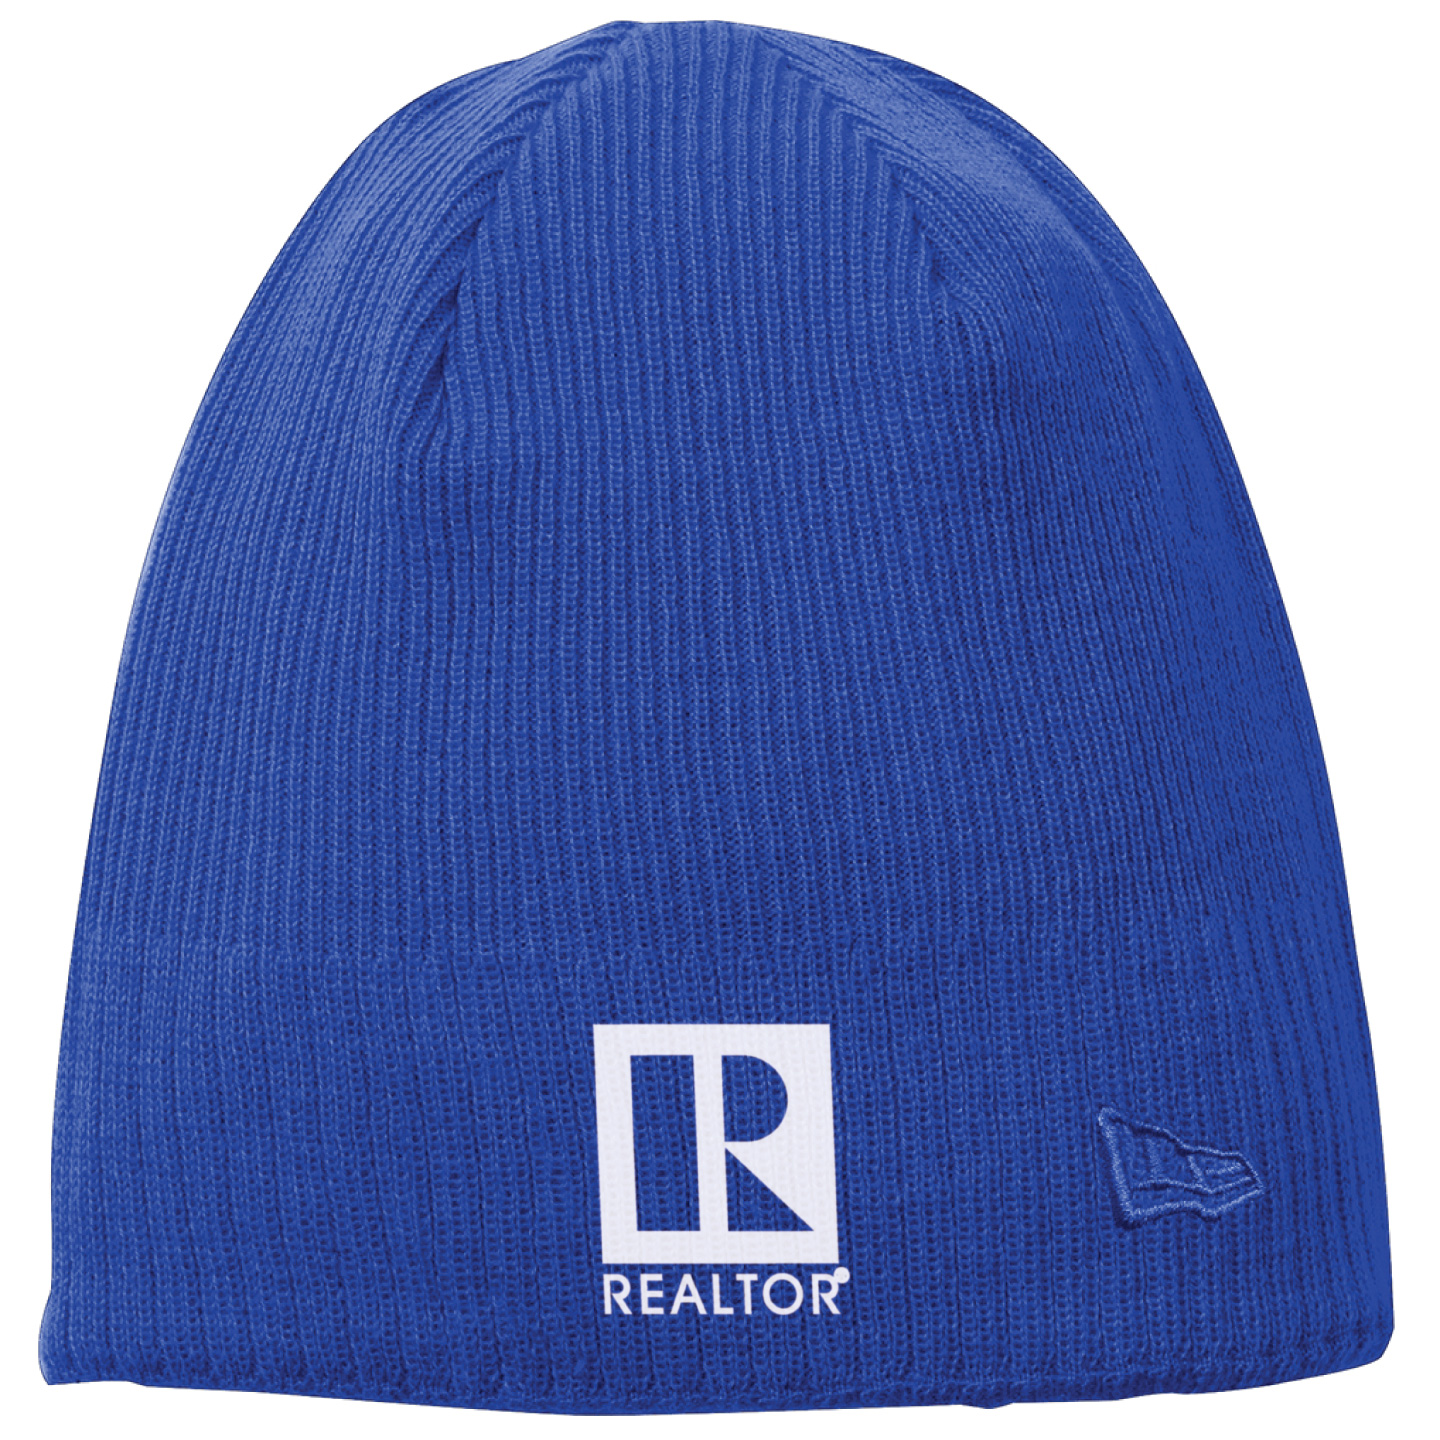 New Era Knit Beanie News, Eras, Knits, Beanies, Hats, Outdoors